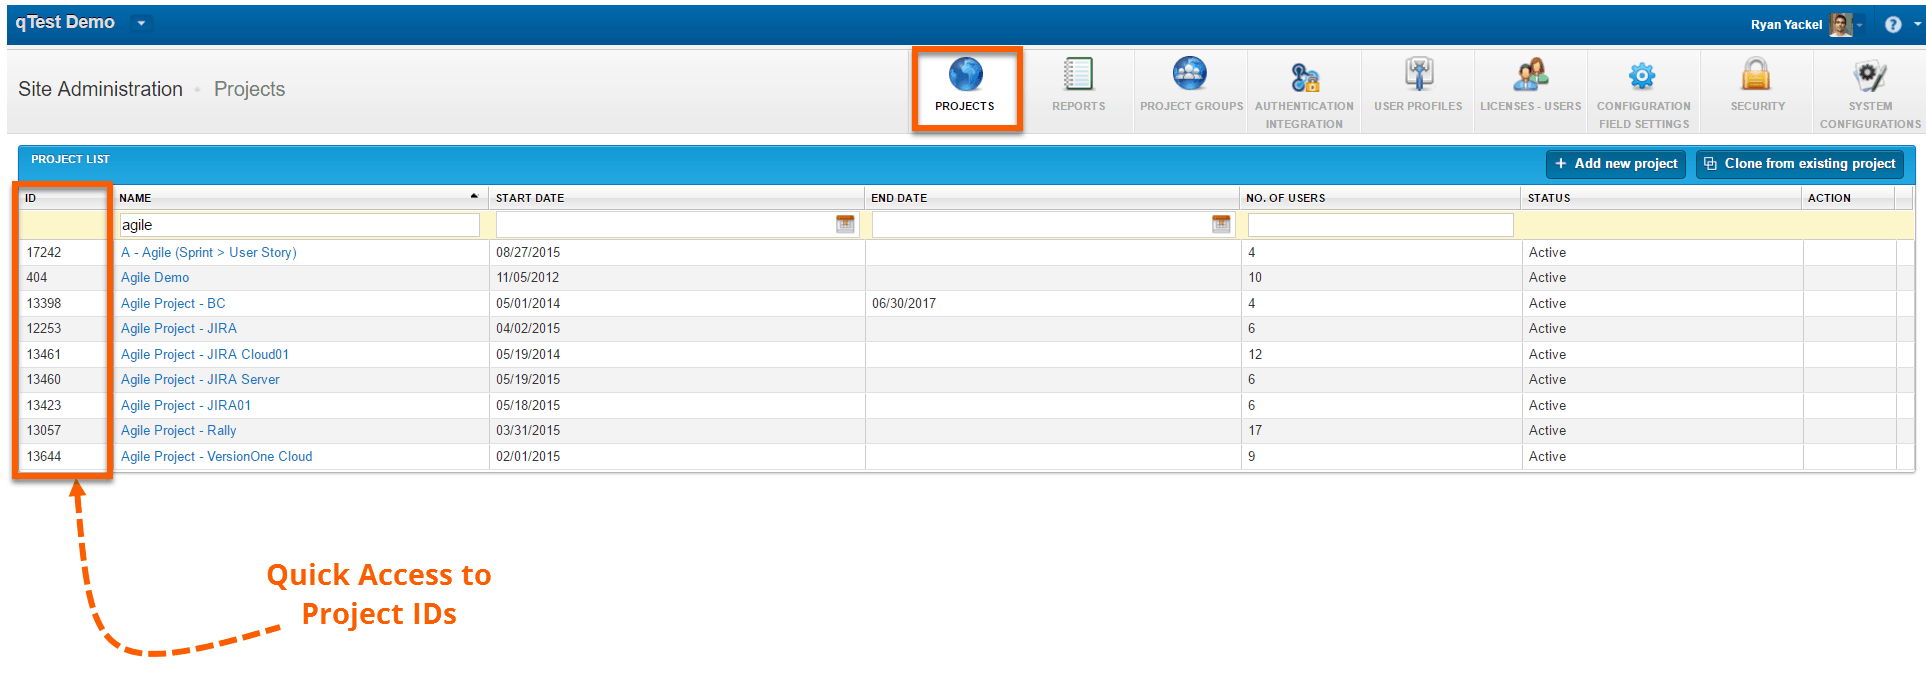 Quick Access to Project IDs